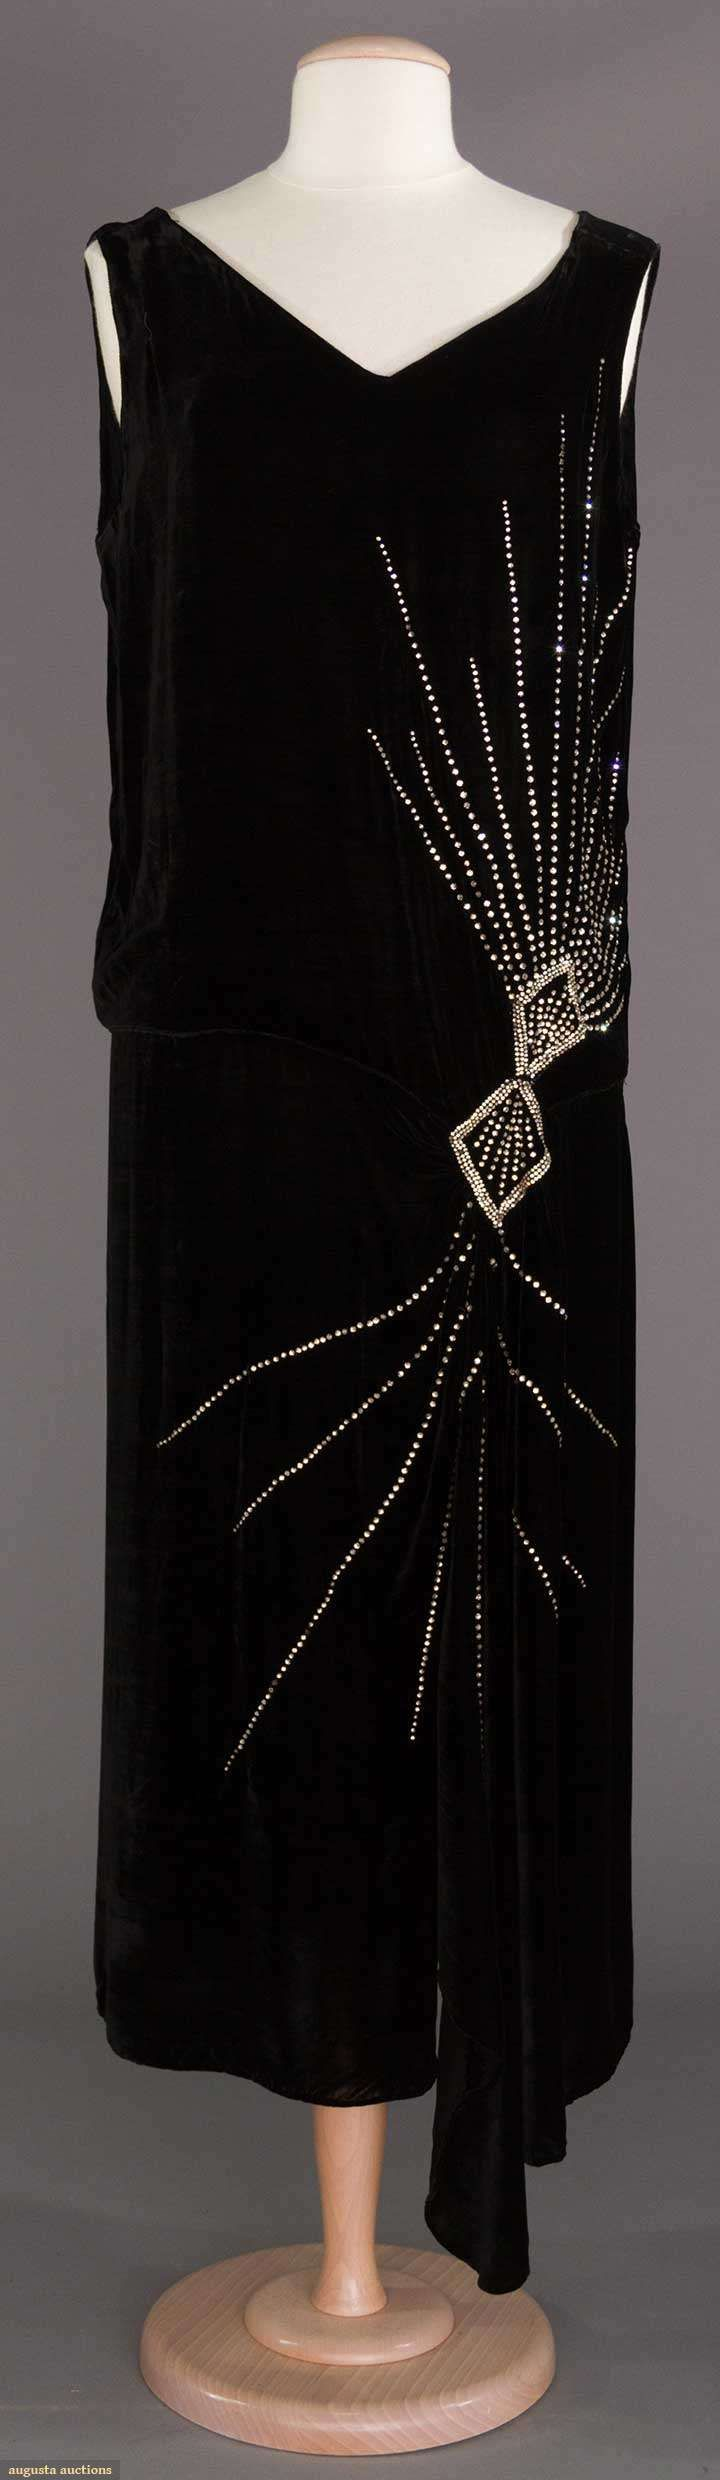 "SILK VELVET EVENING GOWN, 1920s  October 25, 2017 NYC New York City  Black velvet, 2 diamond shapes w/ rays in rhinestone, B 42"", Low W 37"", Swag L 56"", excellent."